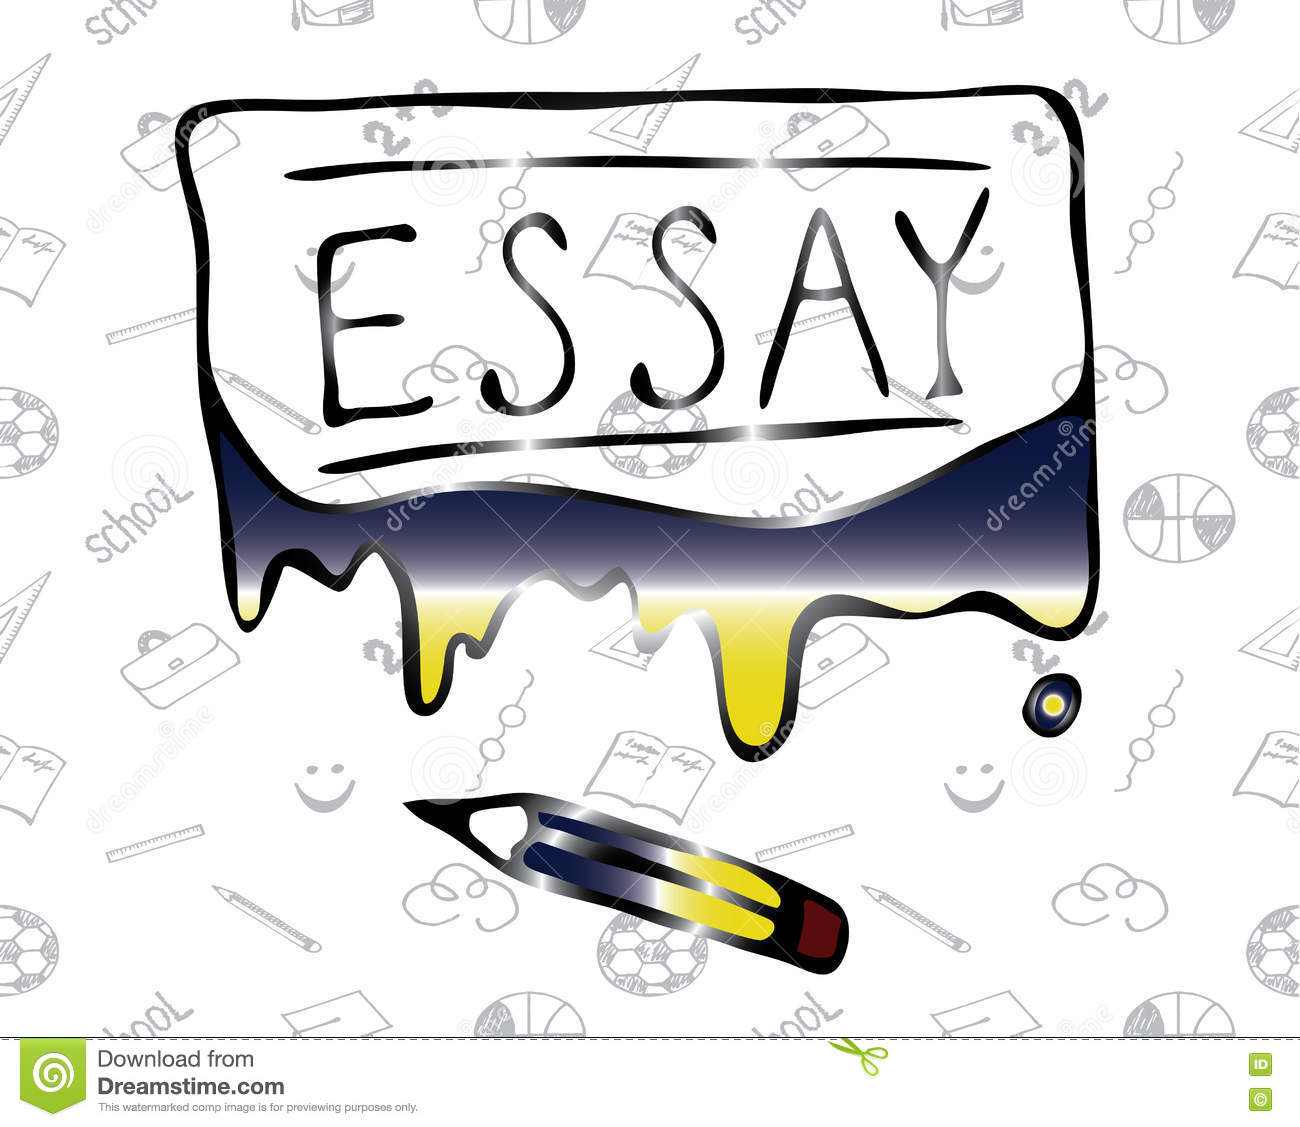 """painting a picture with words essay (""""eine kleine nachtmusik painting essay example 